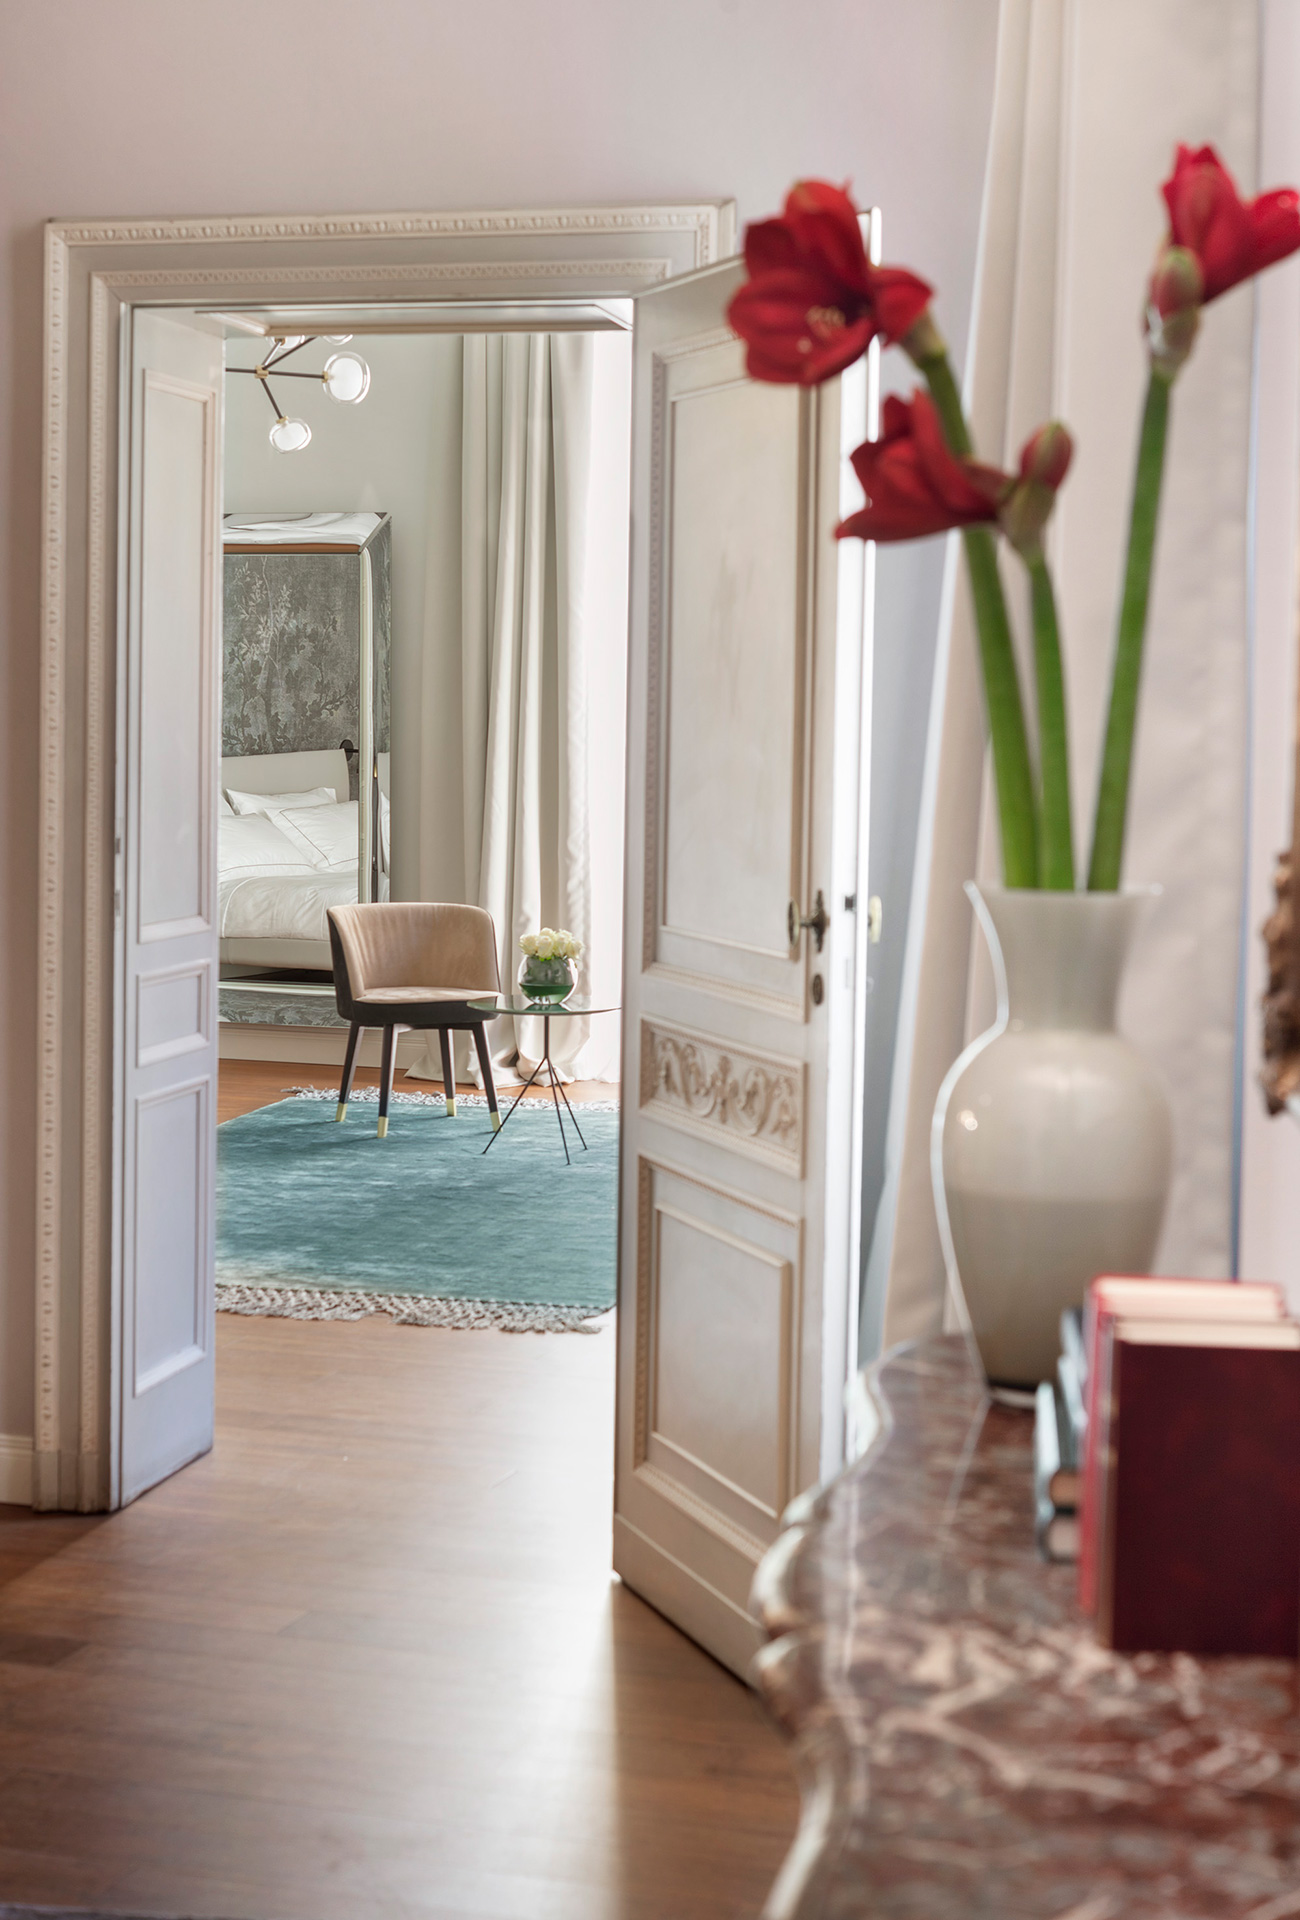 BUTTERFLY BOUTIQUE ROOMS | VERONA